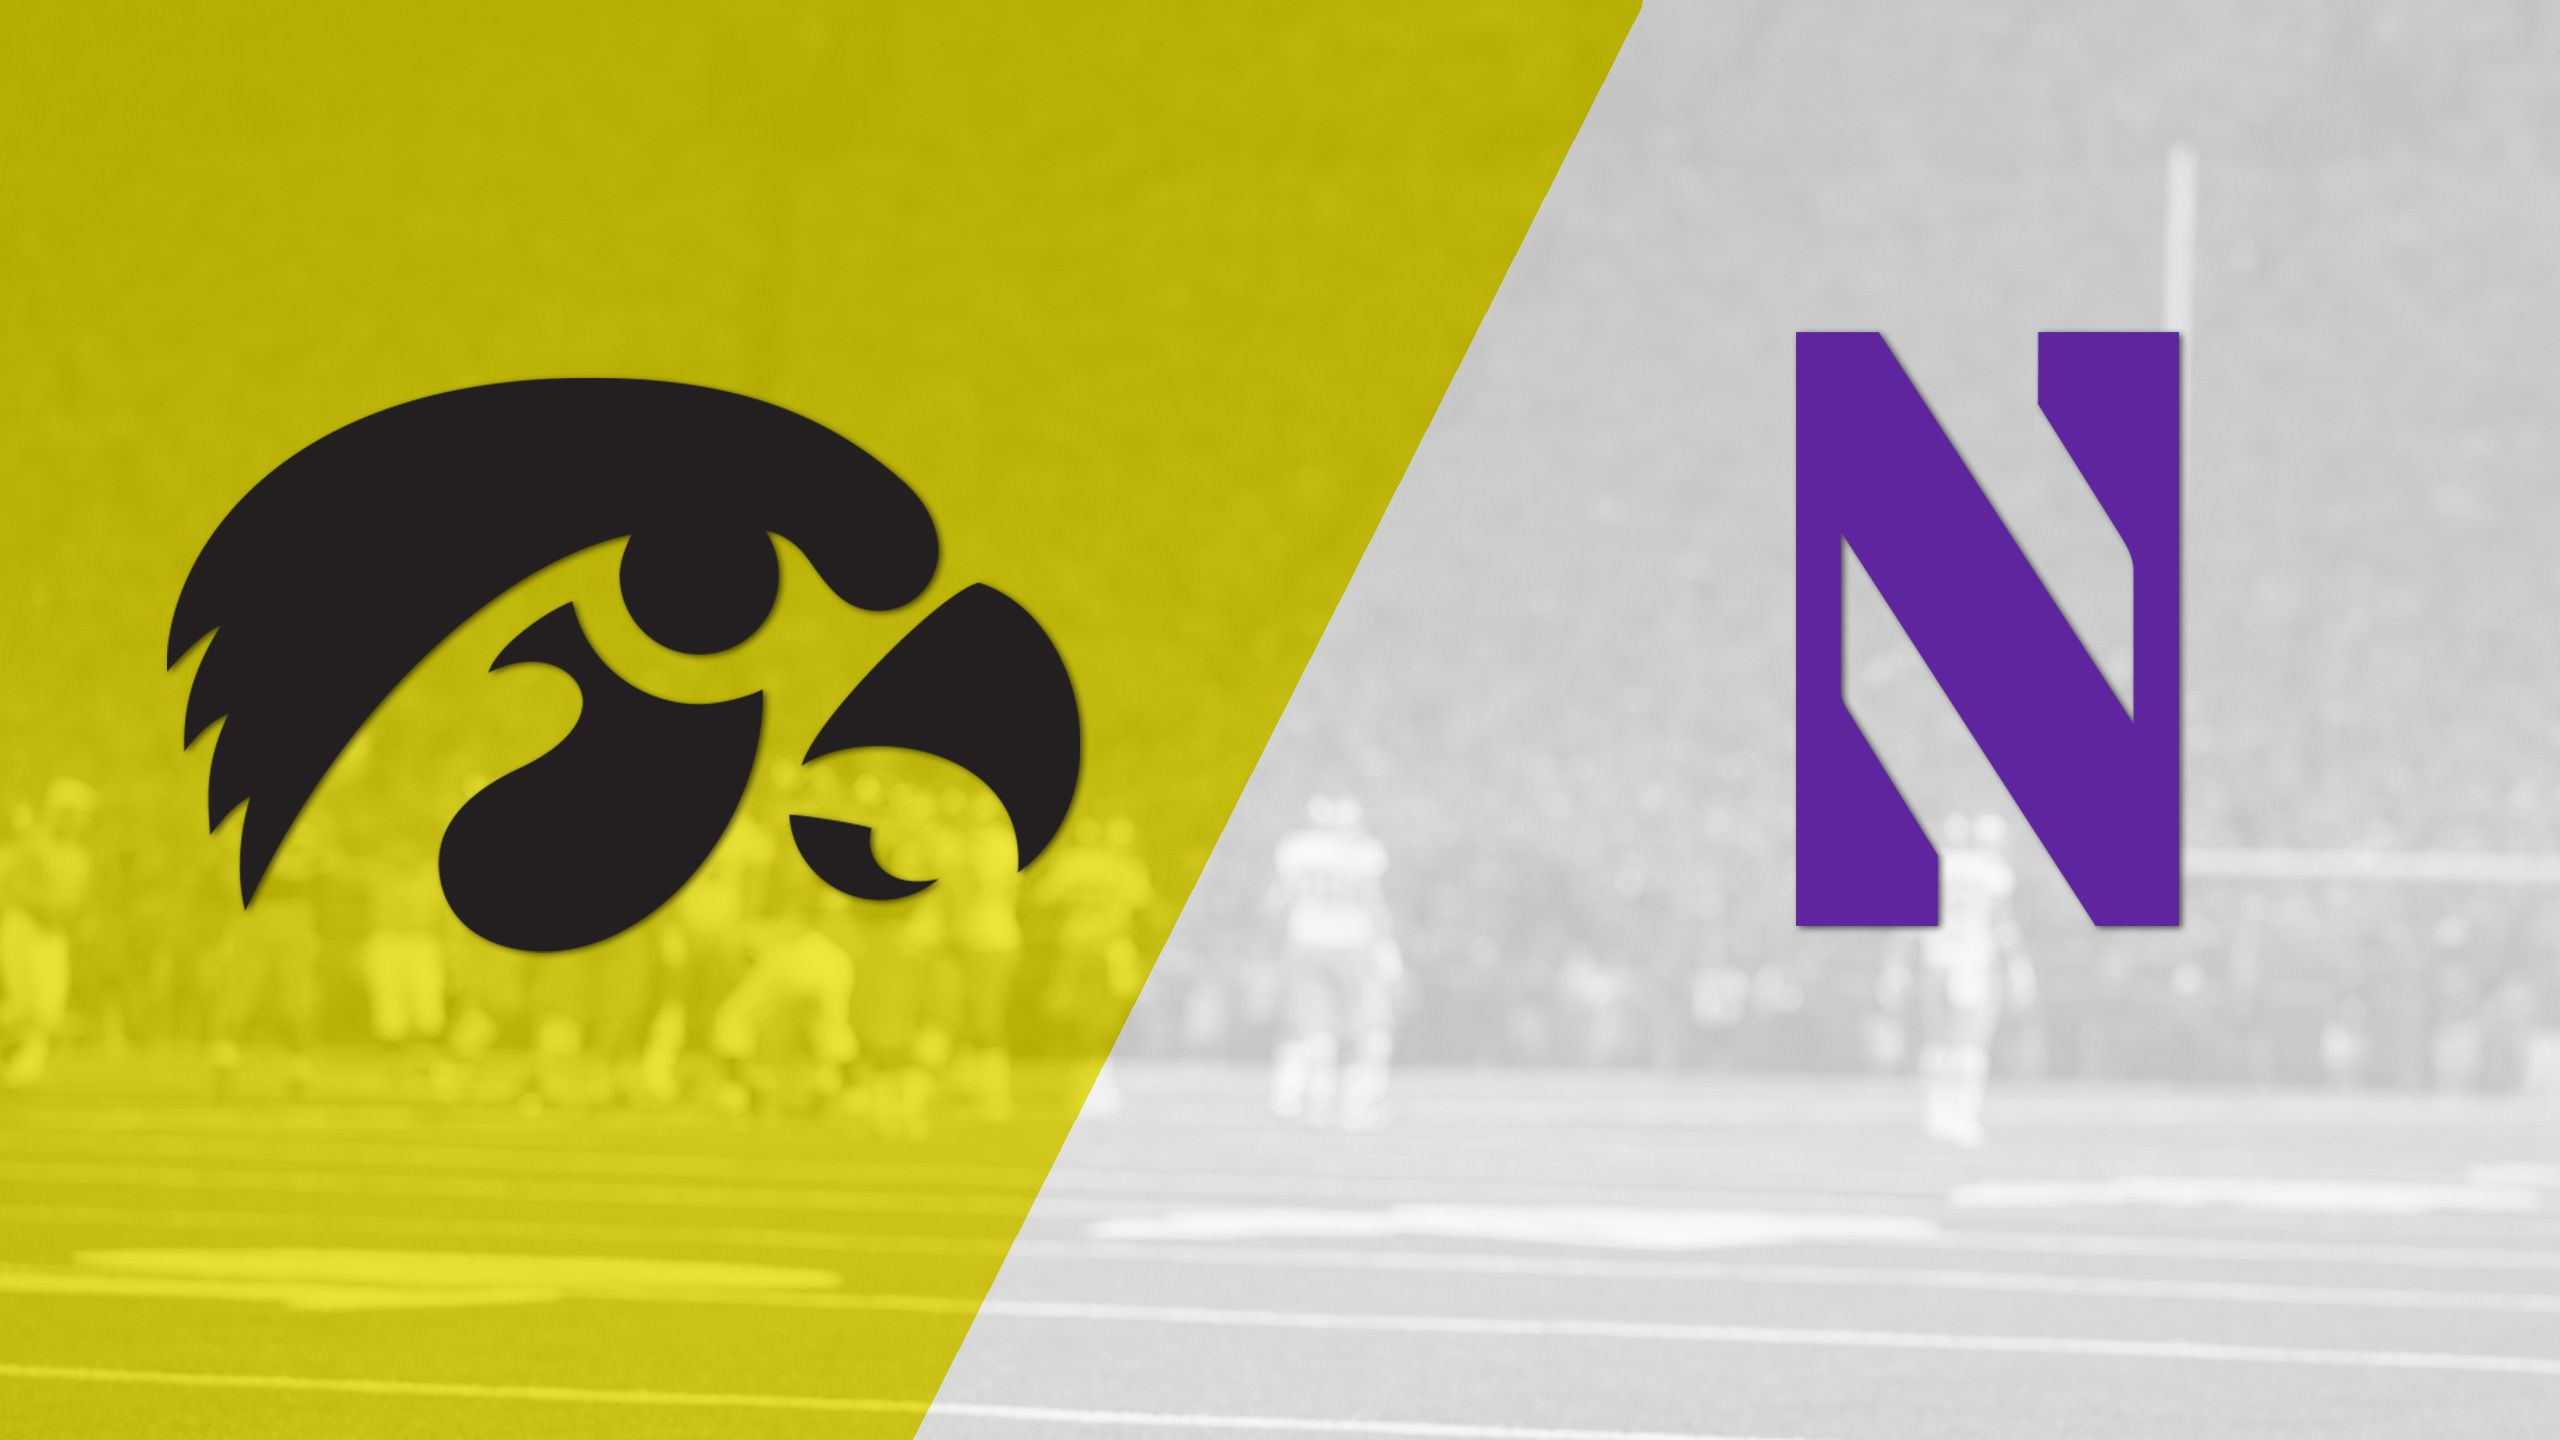 Iowa vs. Northwestern (Football)